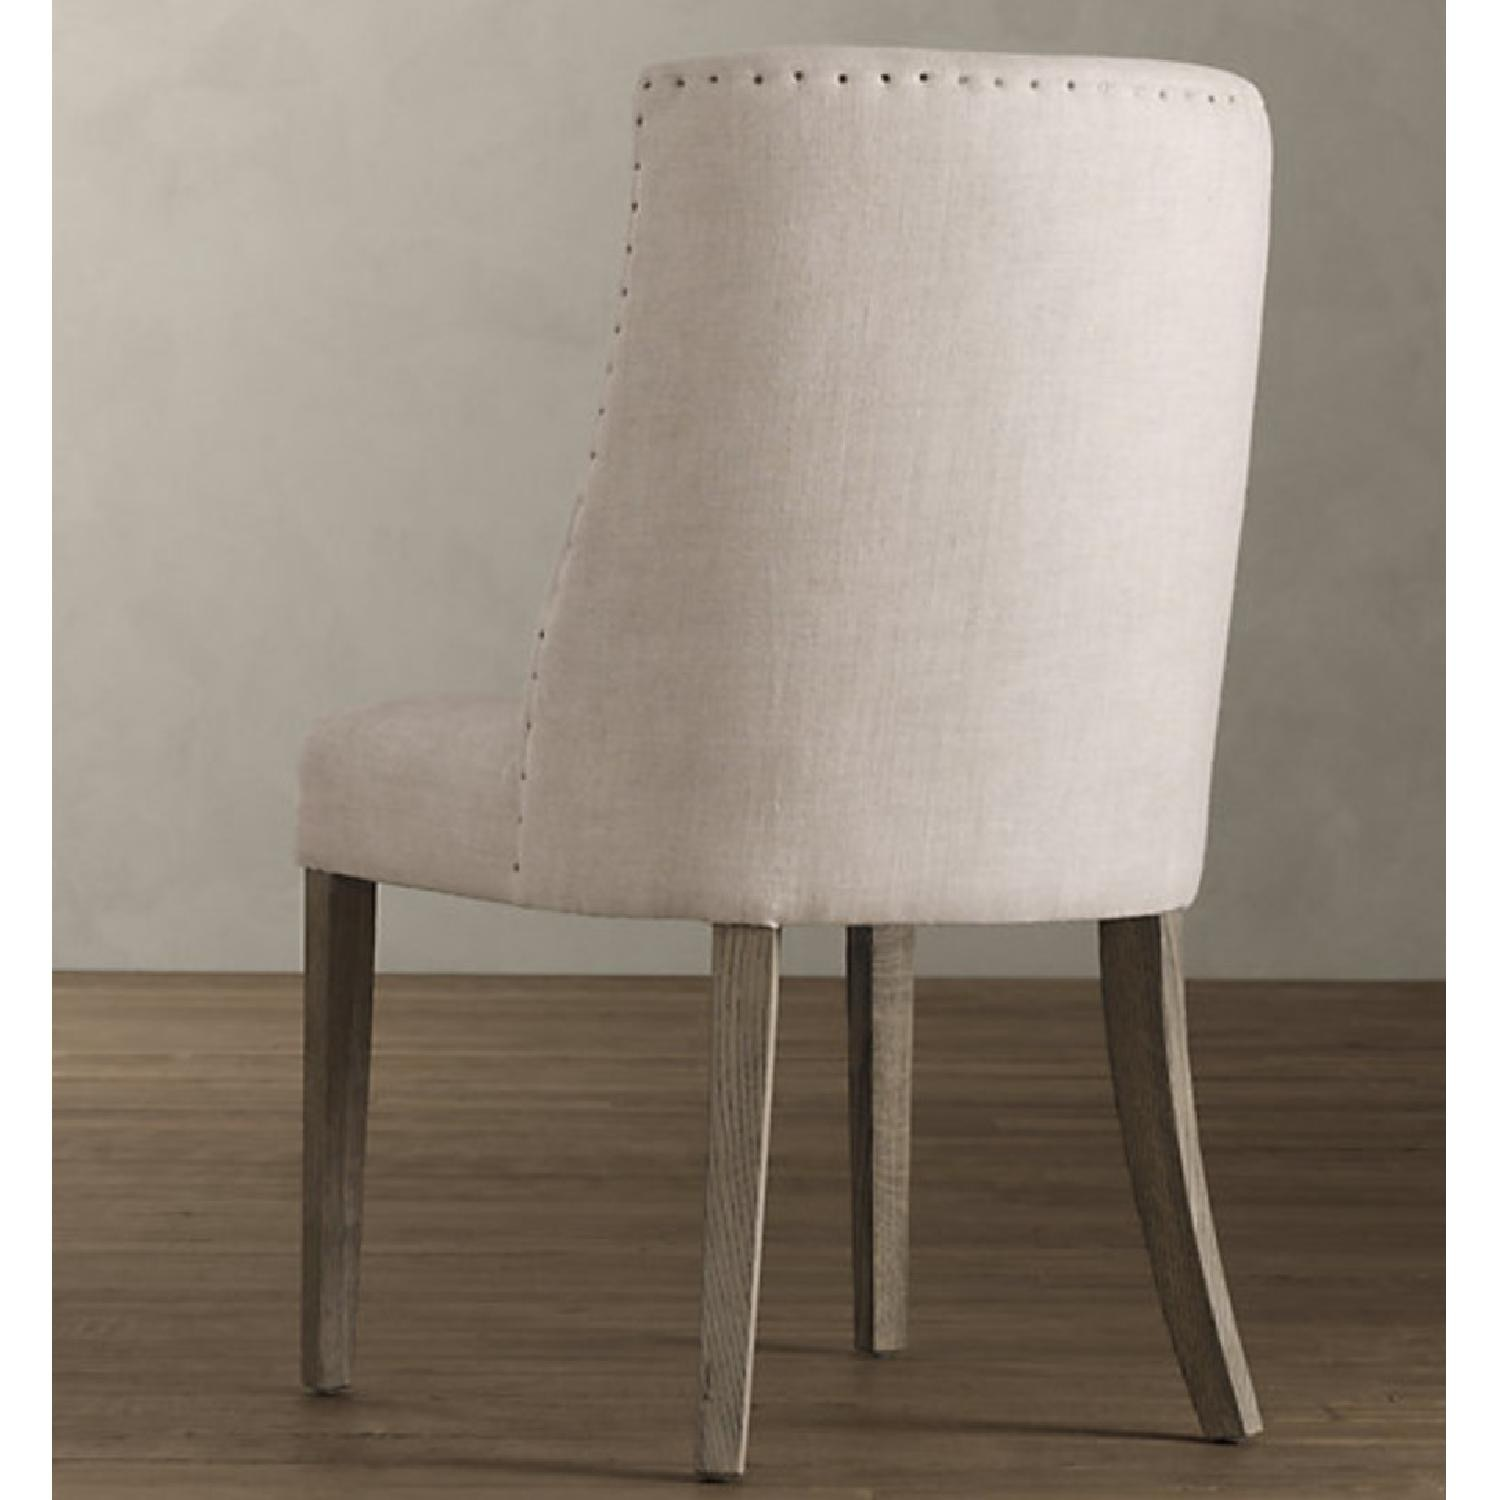 Restoration Hardware 1940S French Barrelback Fabric Chair - image-4